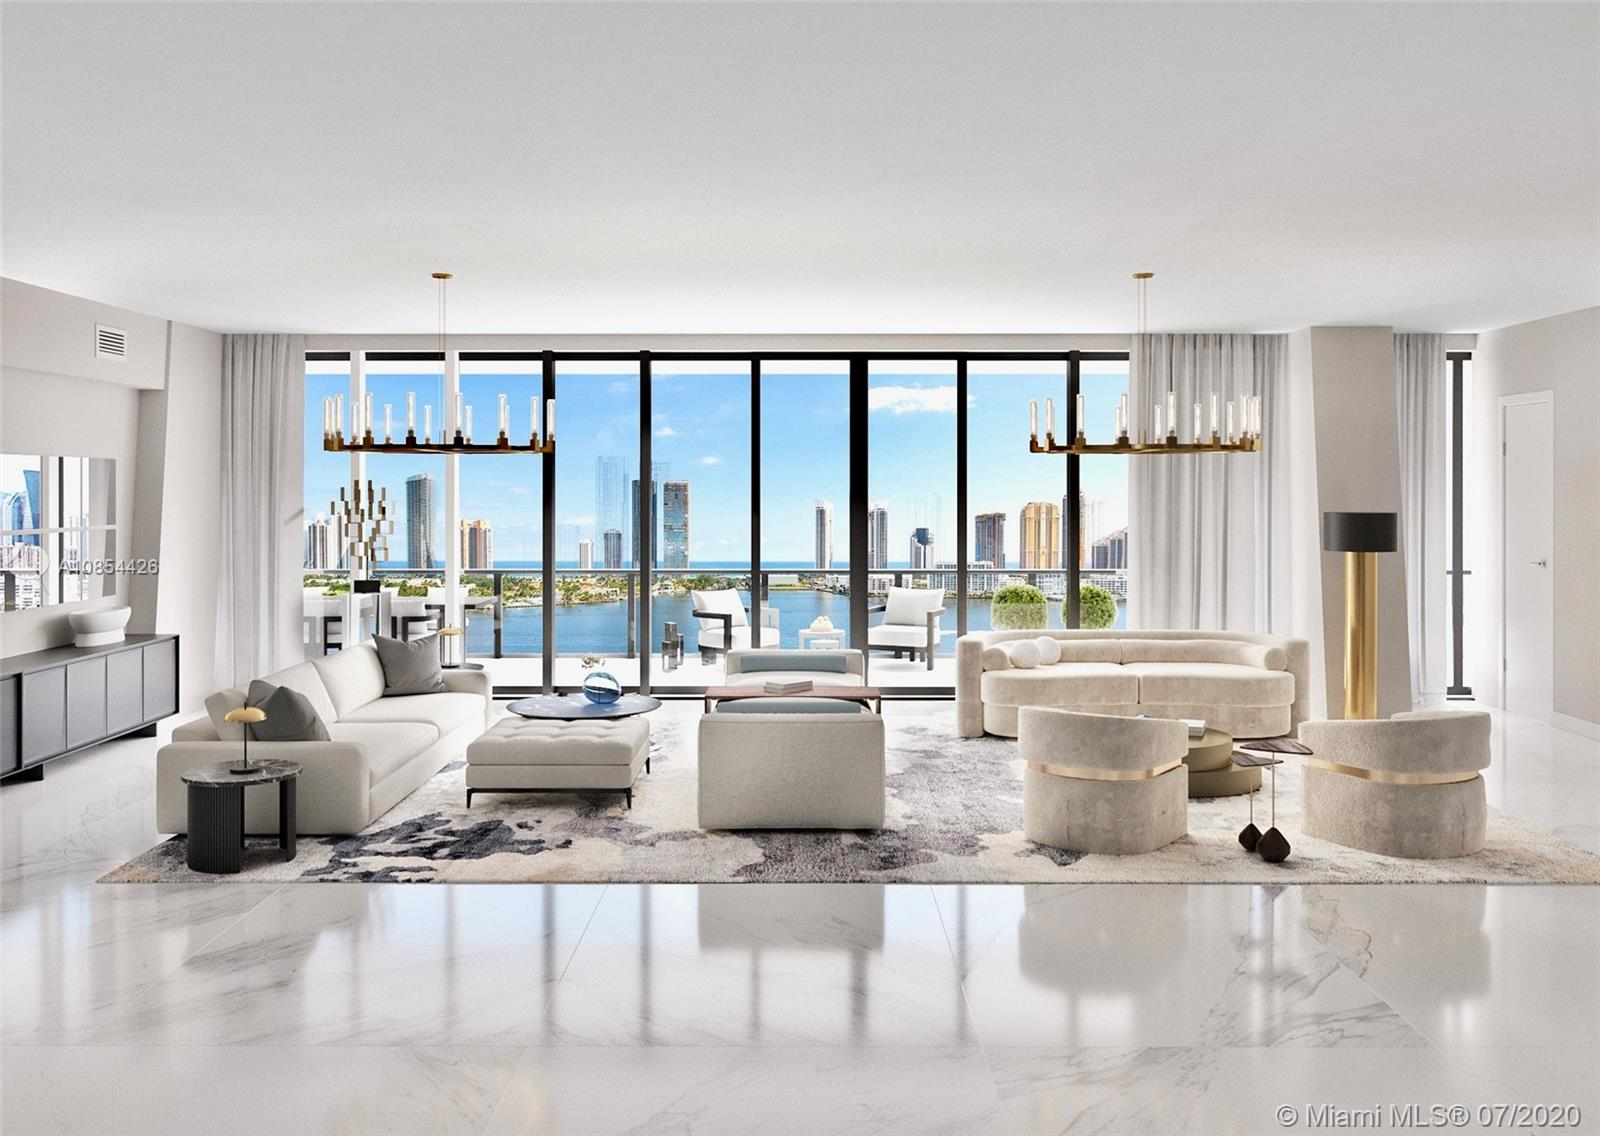 Nothing speaks luxury like living on a Private Island. Introducing Residence #908 in the highly desirable North Tower at Privé. This spacious flow-through 4 bedroom, 6 bathroom residence features unobstructed bay and Atlantic Ocean water views from every angle. The unit has been updated with tile throughout, custom built-out closets and window treatments. Privé at Island Estates offers its residents an exclusive way of living with over 70,000 SqFt of world class exterior and interior social spaces. Amenities such as a two-story gym / spa, private marina, in-residence room service, tennis court, car wash, guest suites and more. Only minutes away from the exclusive shops at Bal Harbour, Aventura Mall, and Sunny Isles Beach. 3D Tour: https://bit.ly/Prive908N